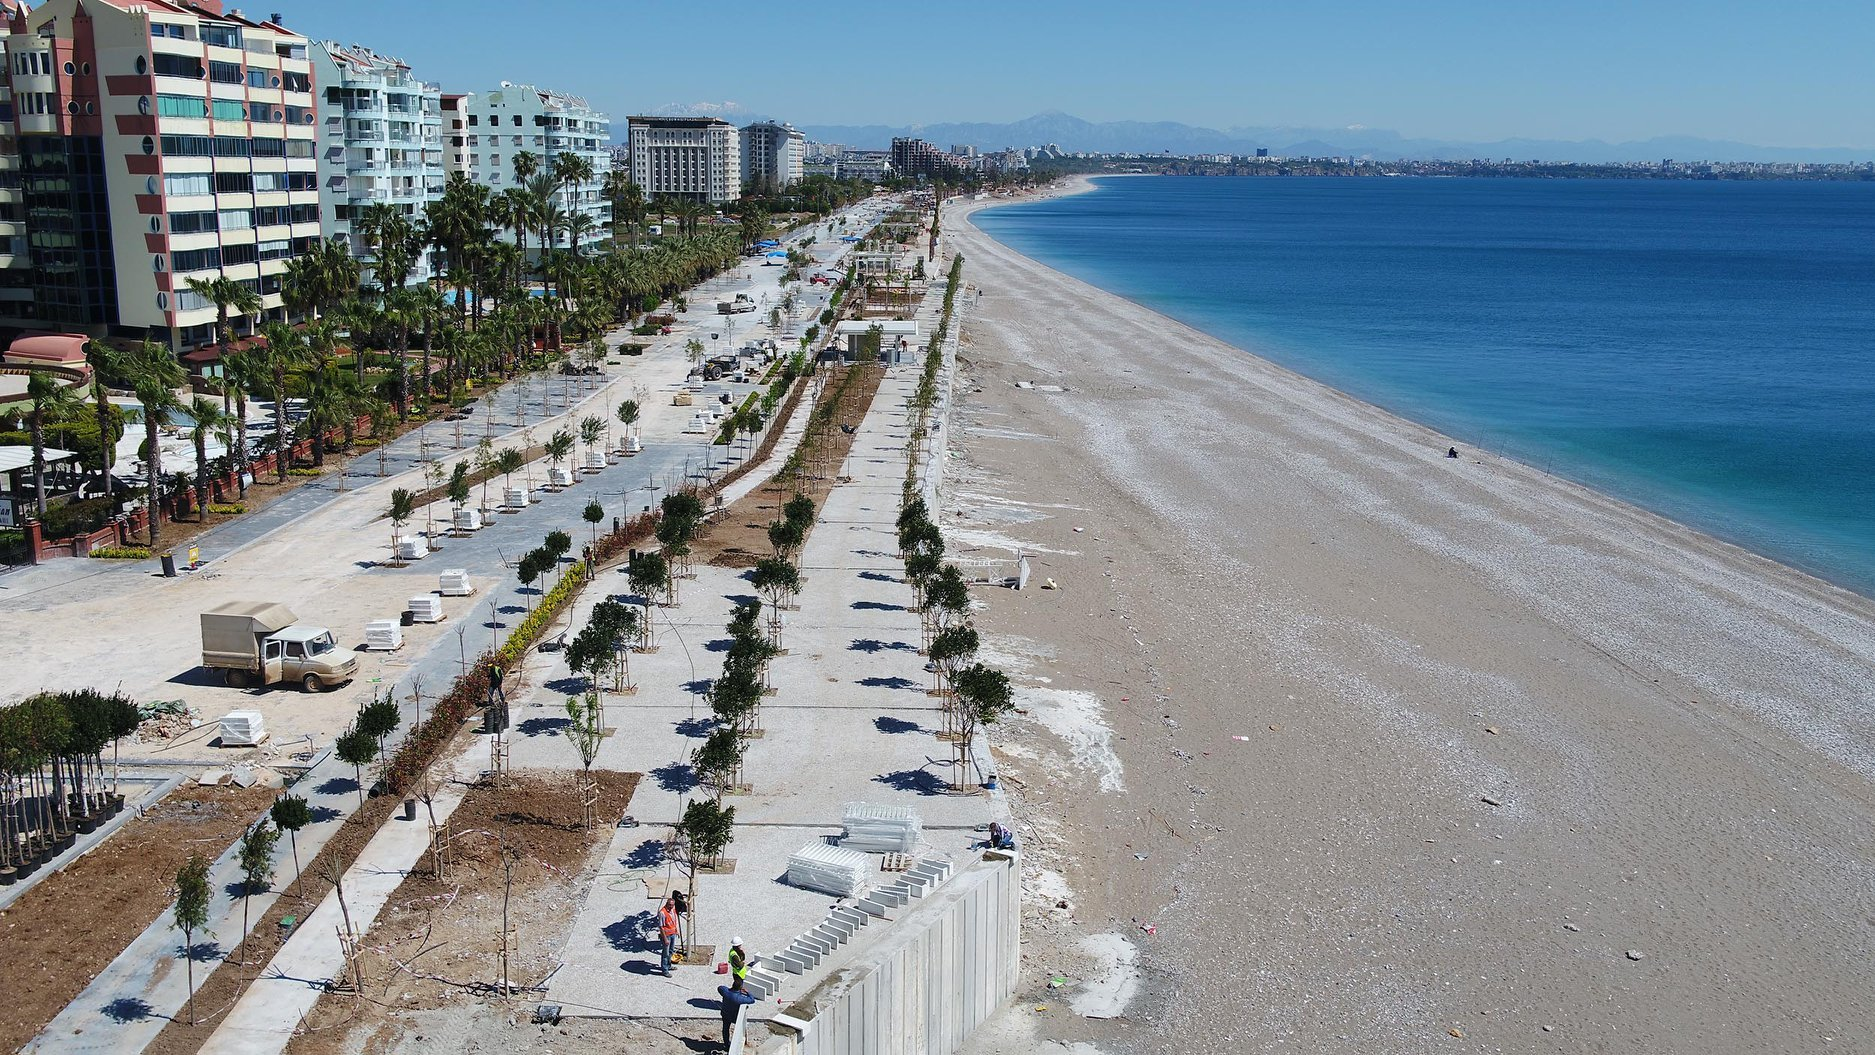 In Antalya, opened part of the renovated waterfront